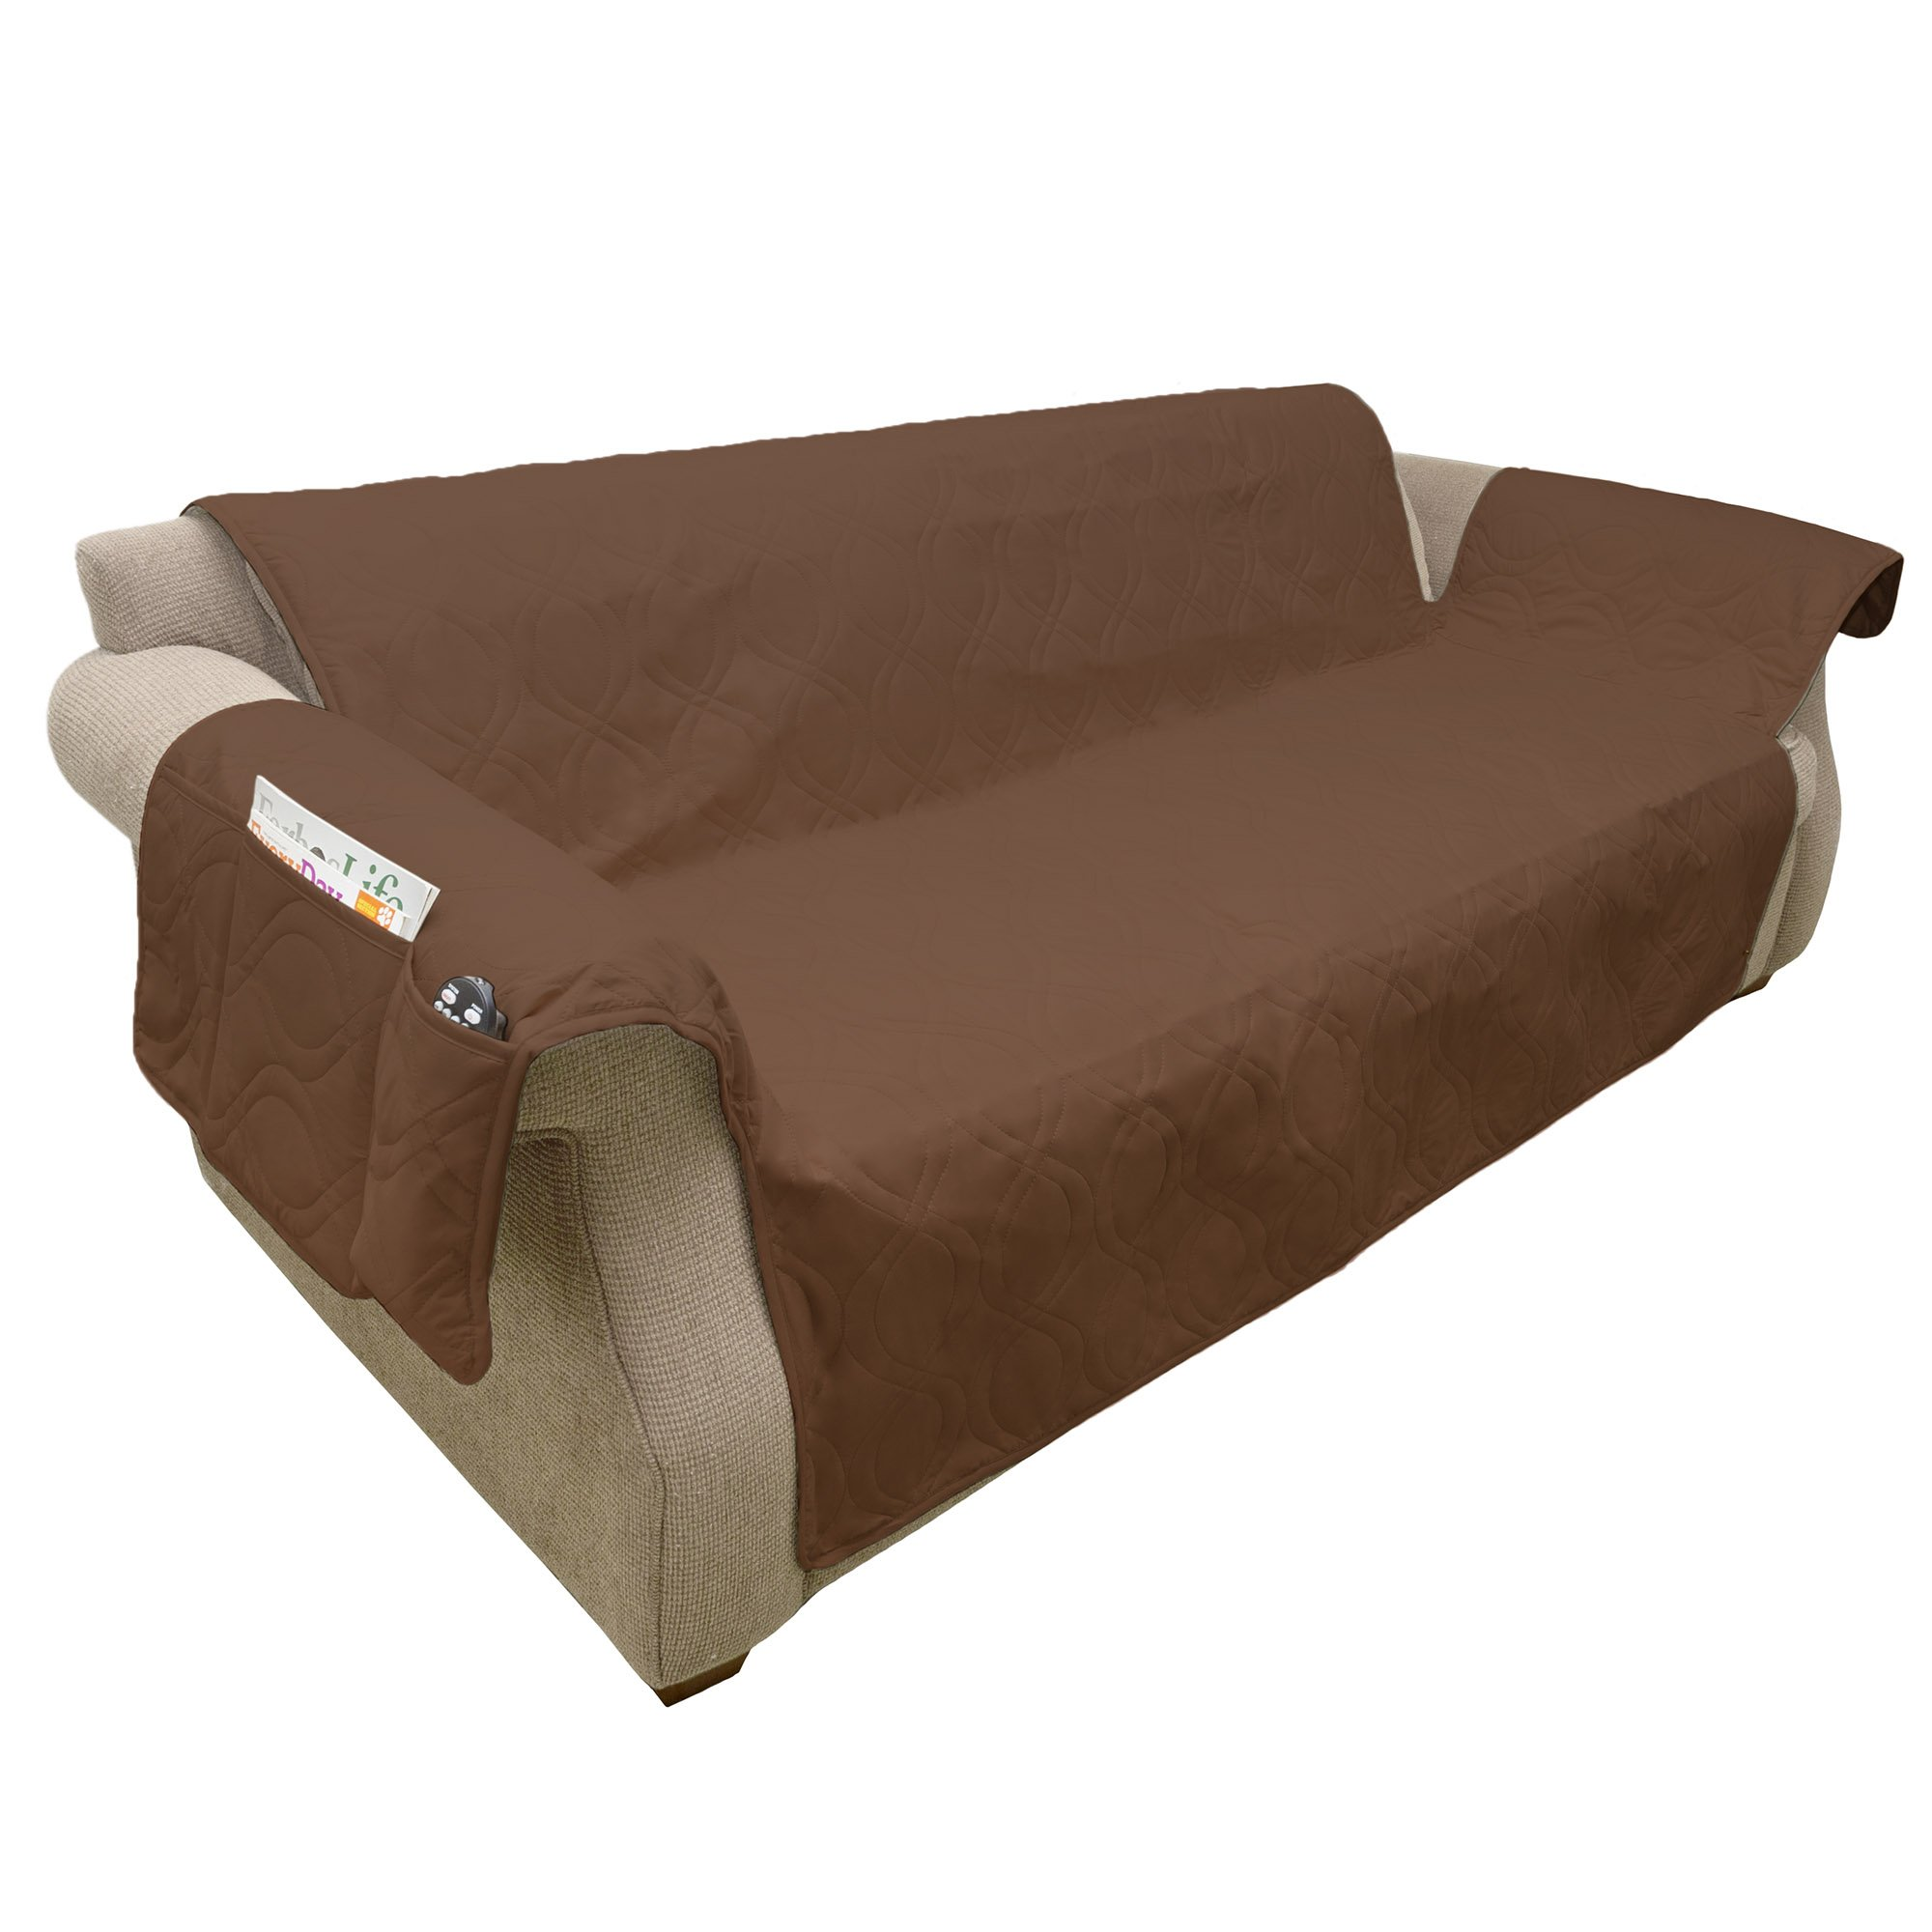 PETMAKER Furniture cover, 100% Waterproof Protector Cover for Couch/Sofa by, Non-Slip, Stain Resistant, Great for Dogs, Pets, and Kids – Brown